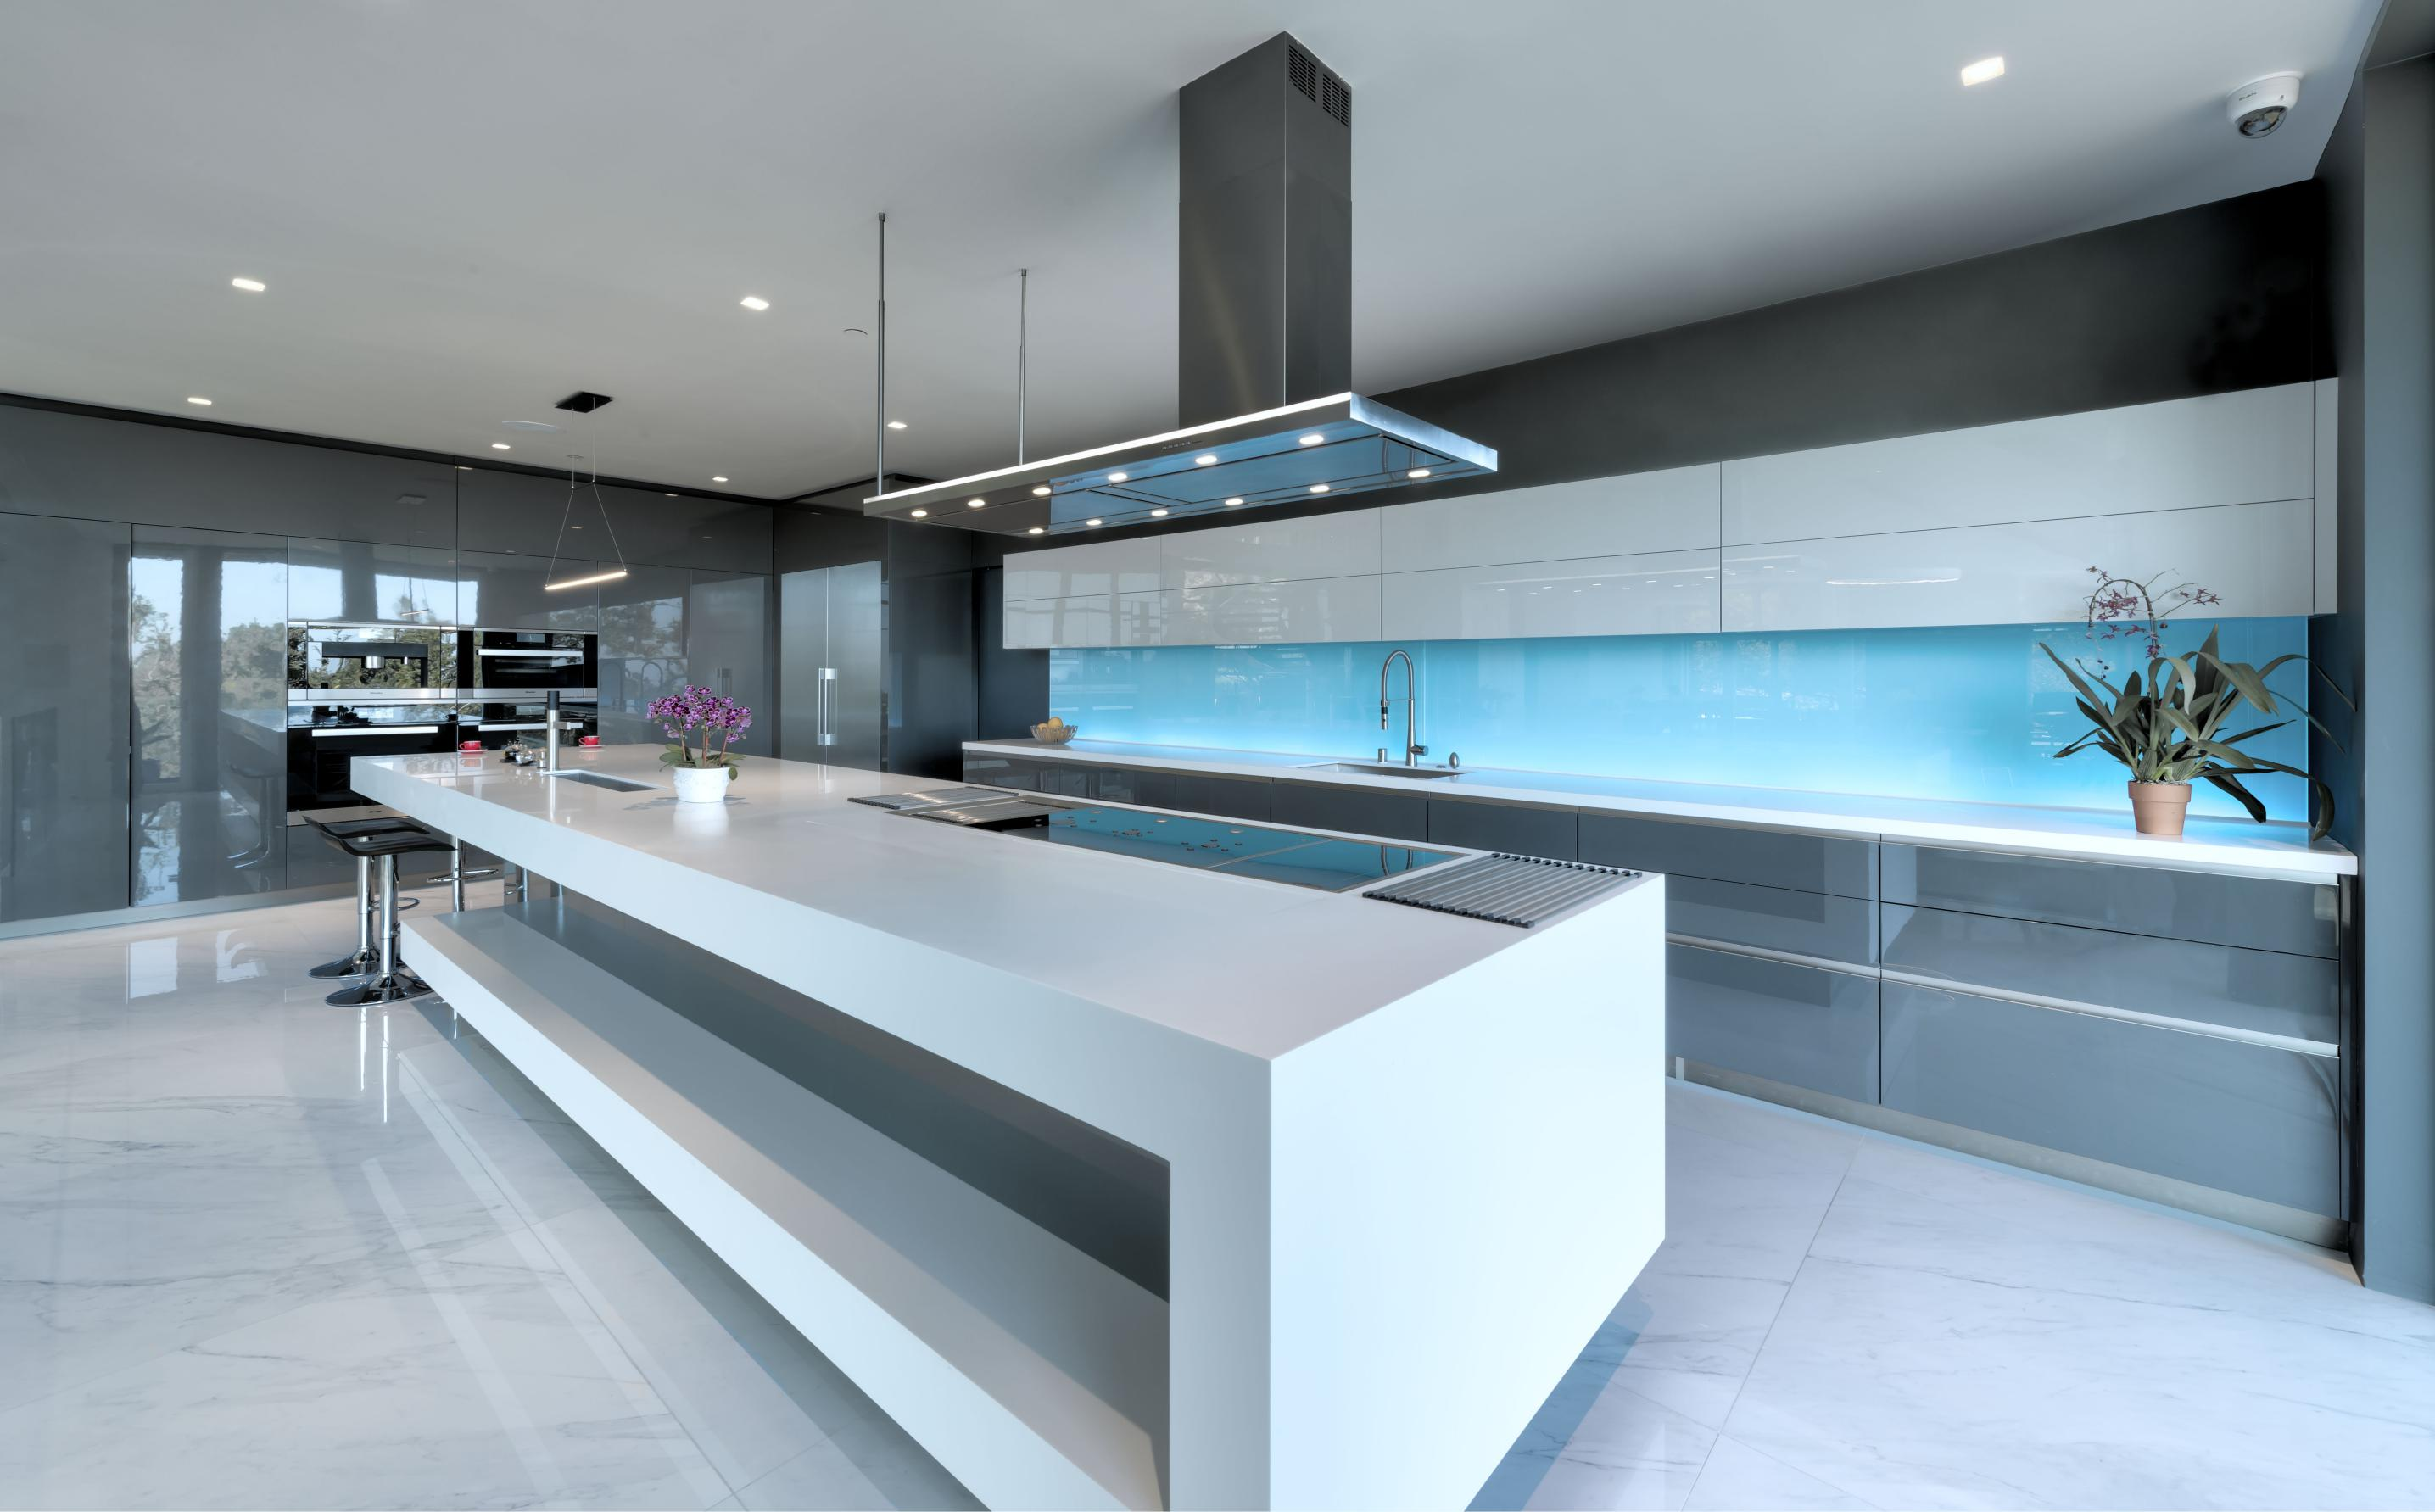 Taaffe-kitchen, Ask the question to Architect, M.DesignArchitects